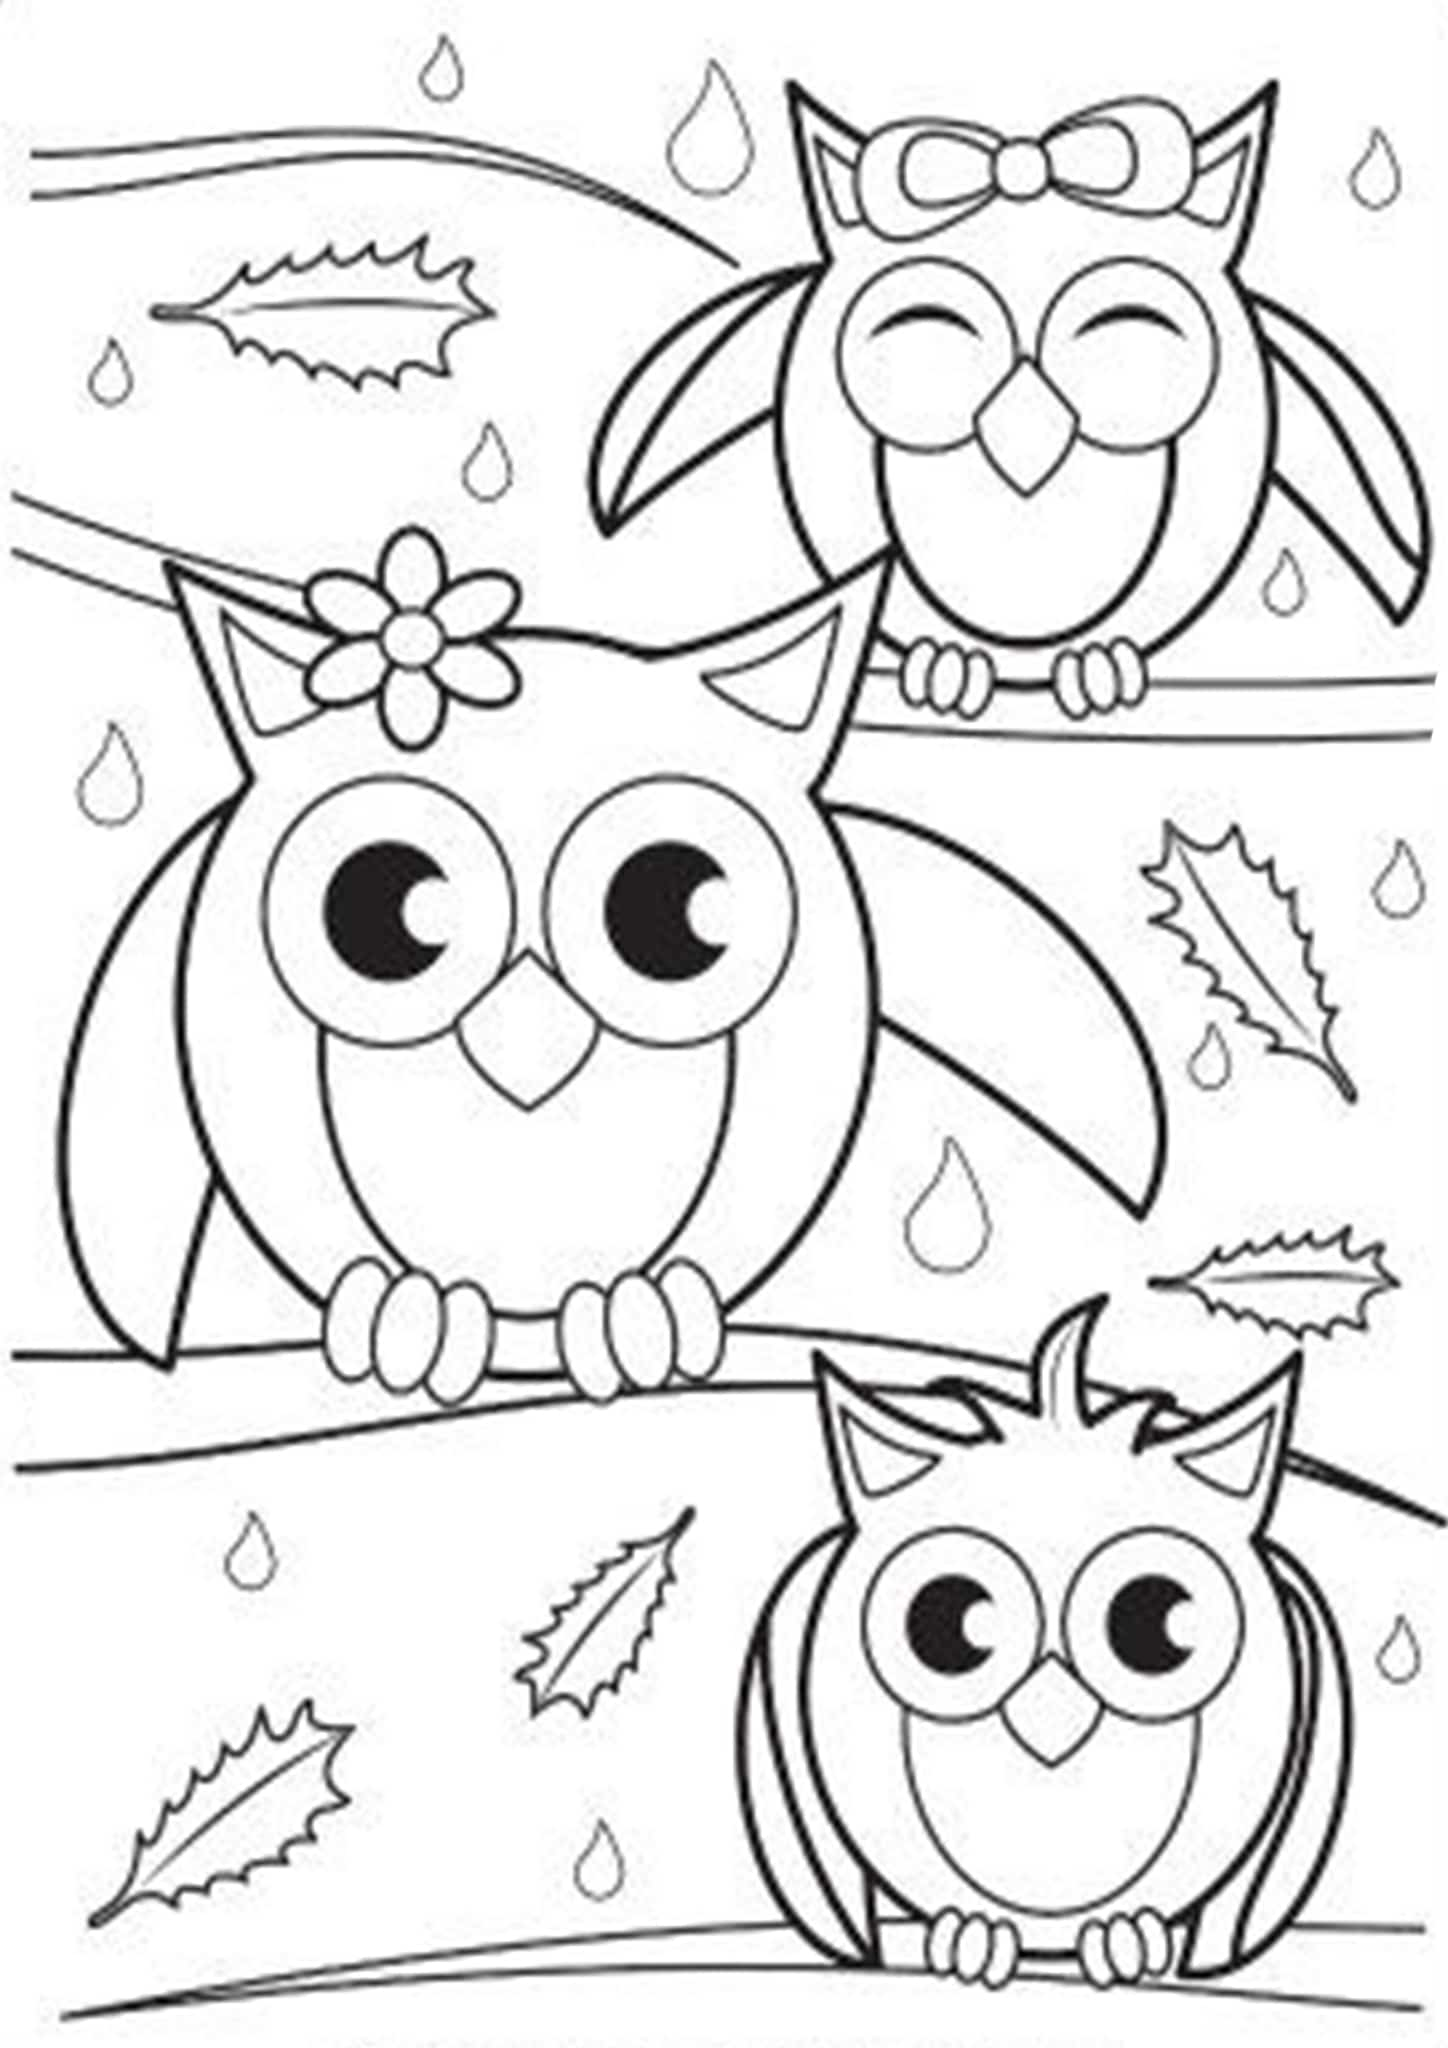 barn owl coloring pages printable free easy to print owl coloring pages tulamama barn coloring printable pages owl